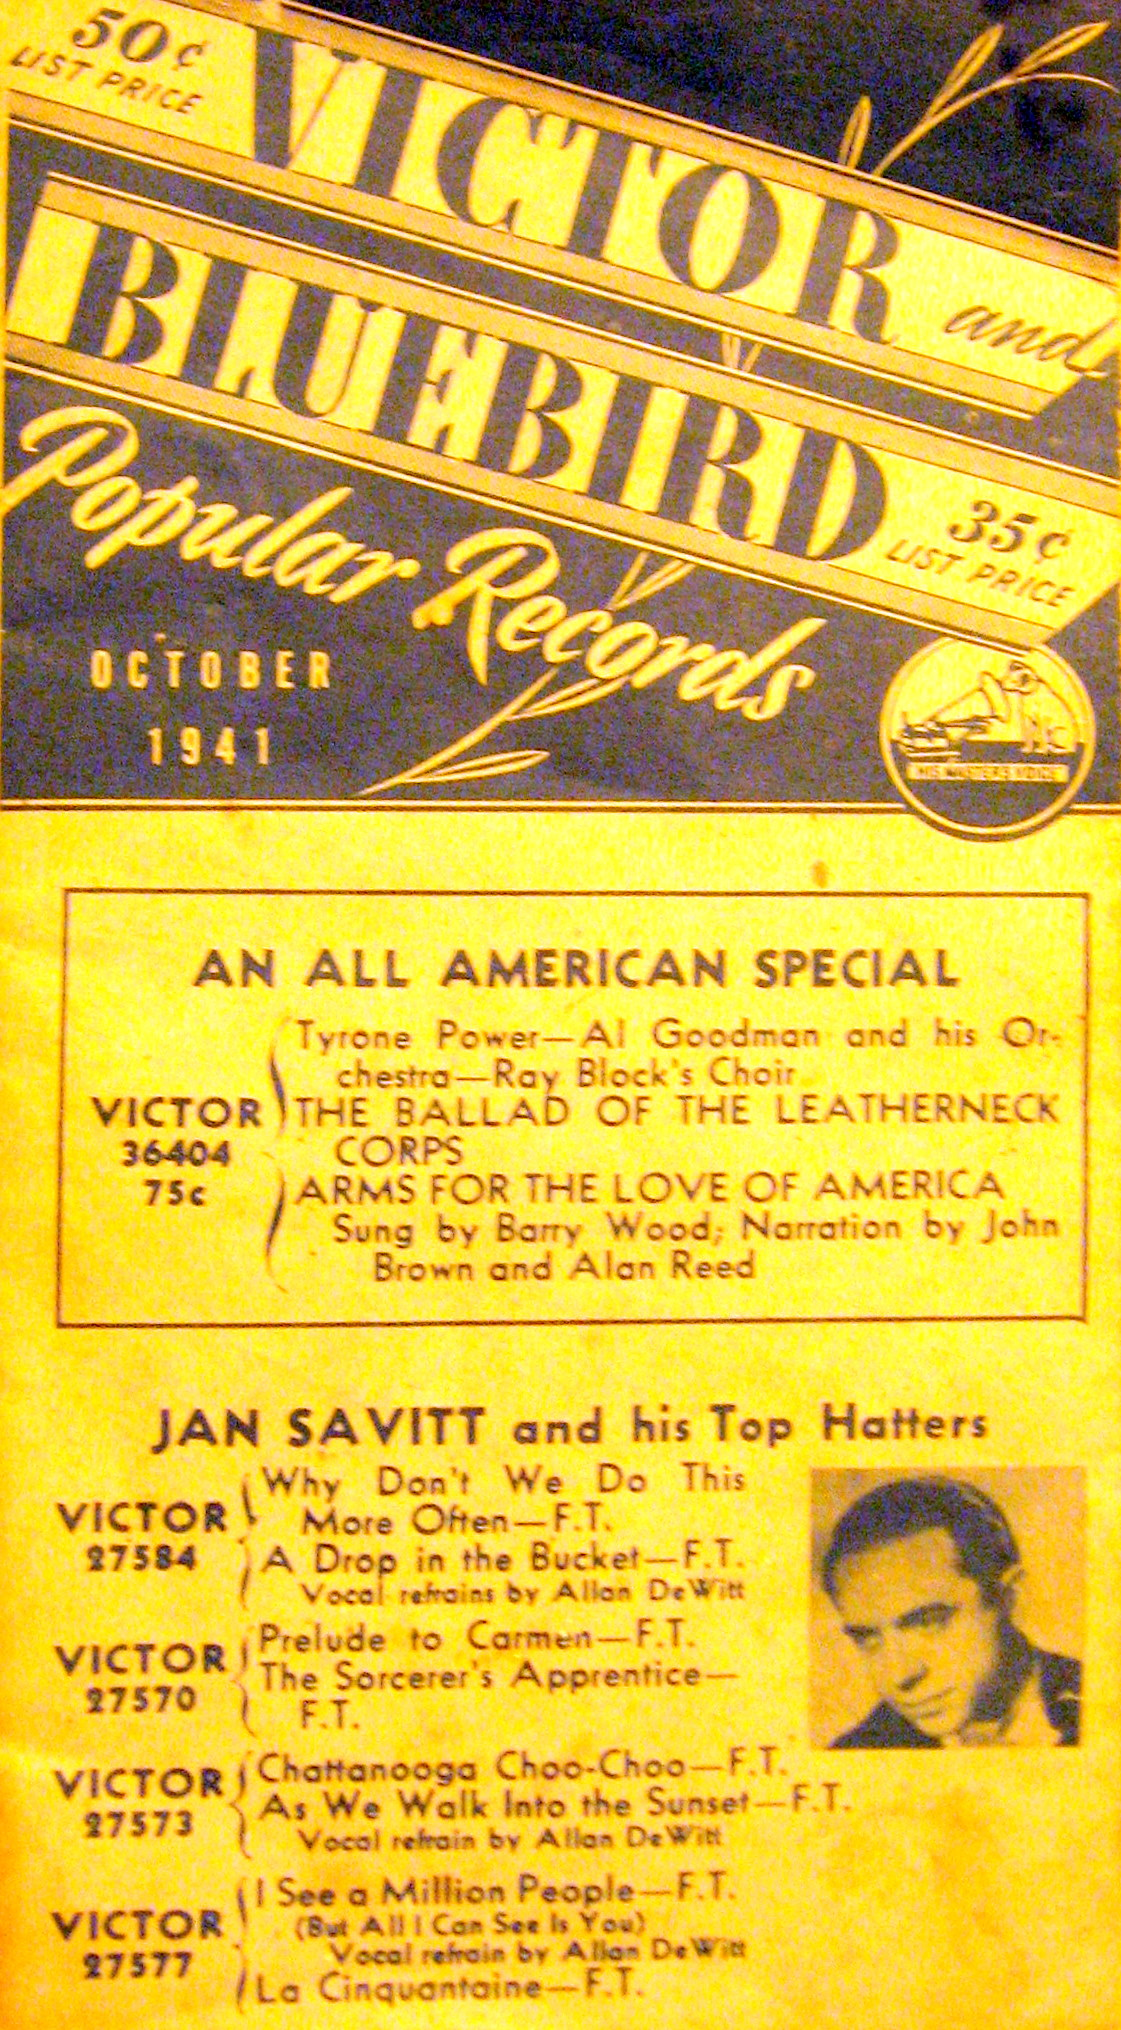 Victor Bluebird Popular Records 1941